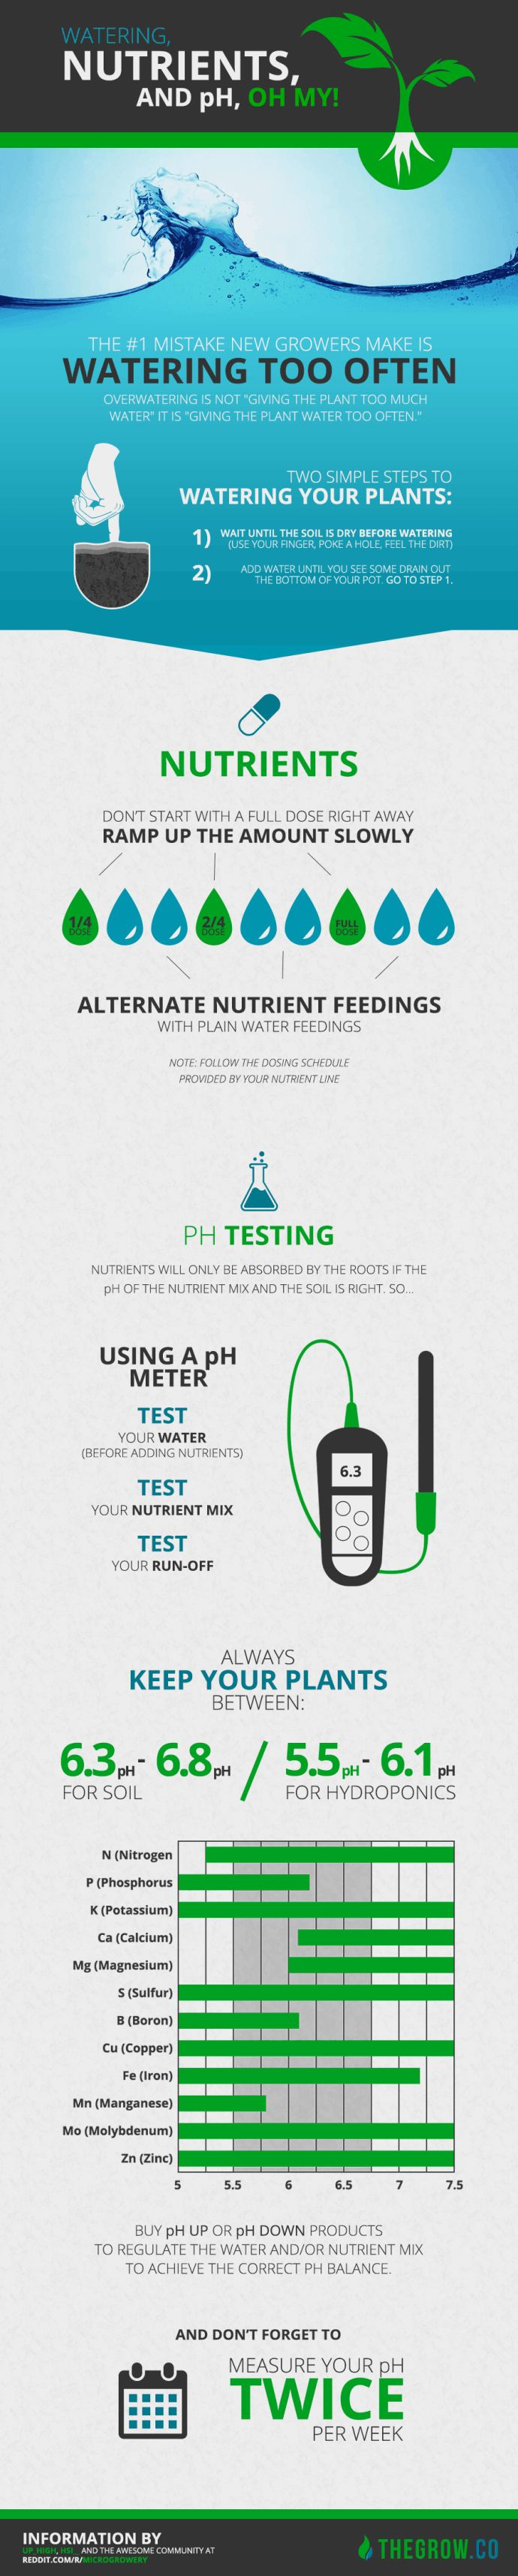 Infographic on Watering, Nutrients and pH